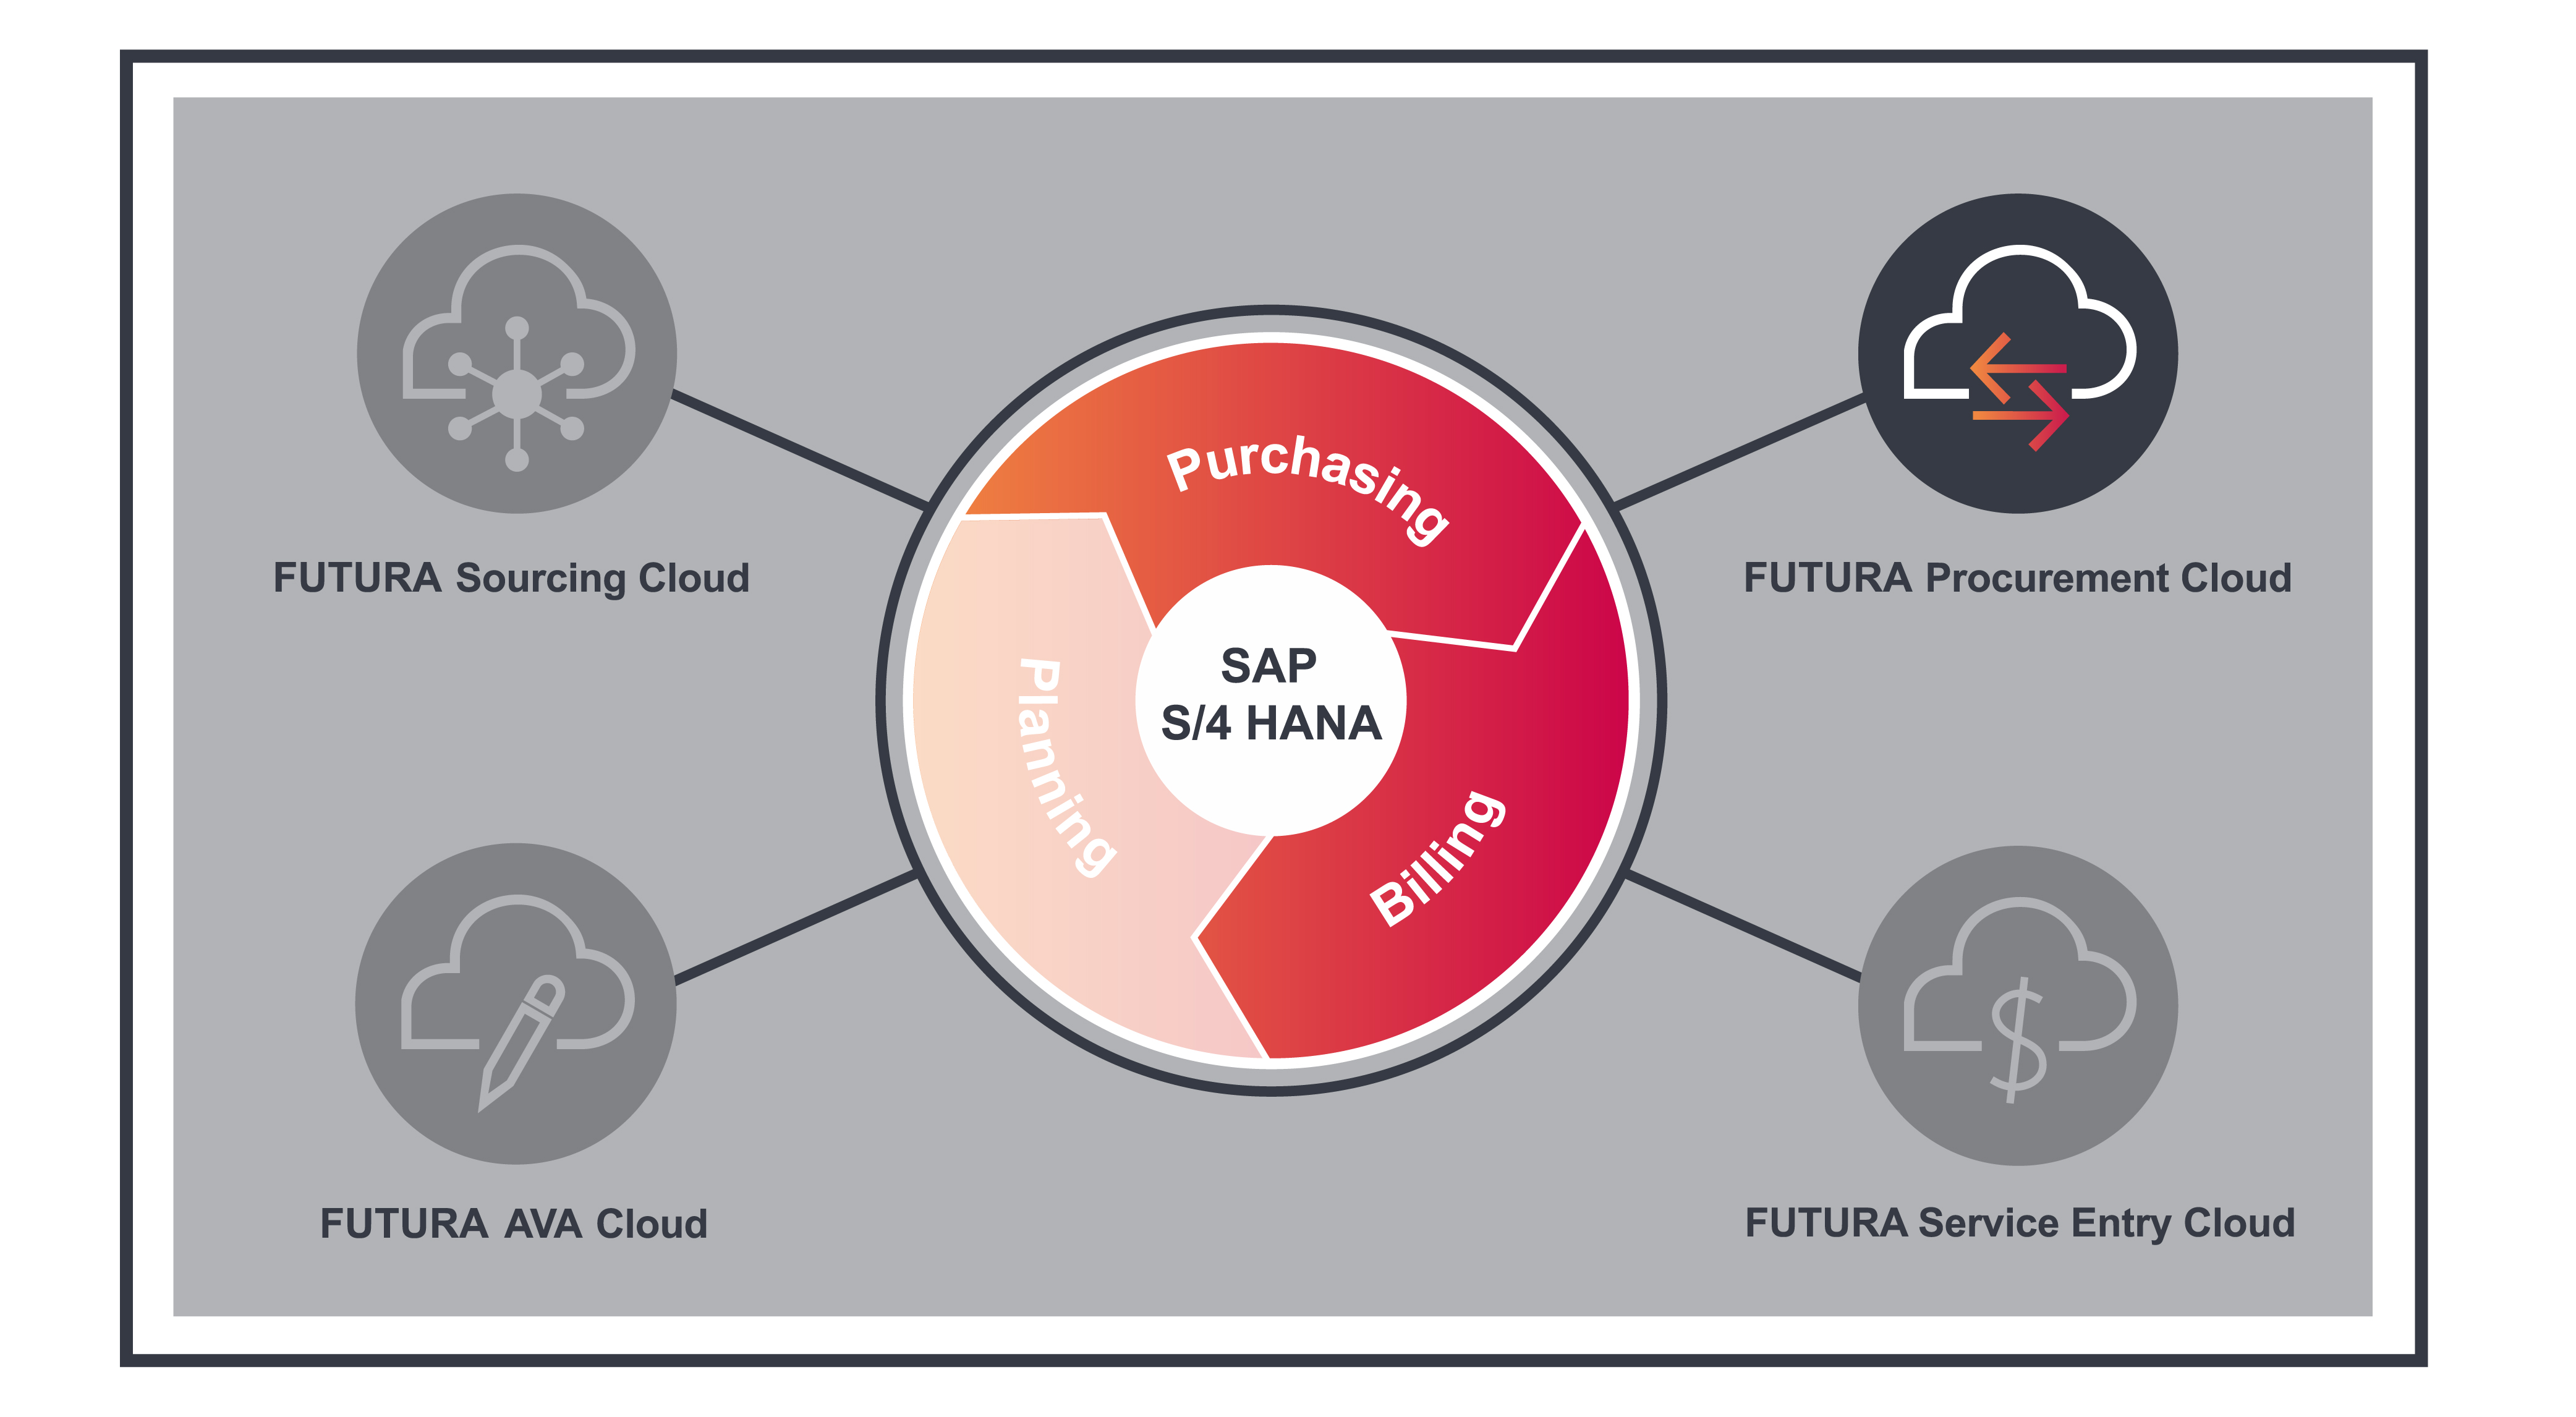 Solution FUTURA Procurement Cloud